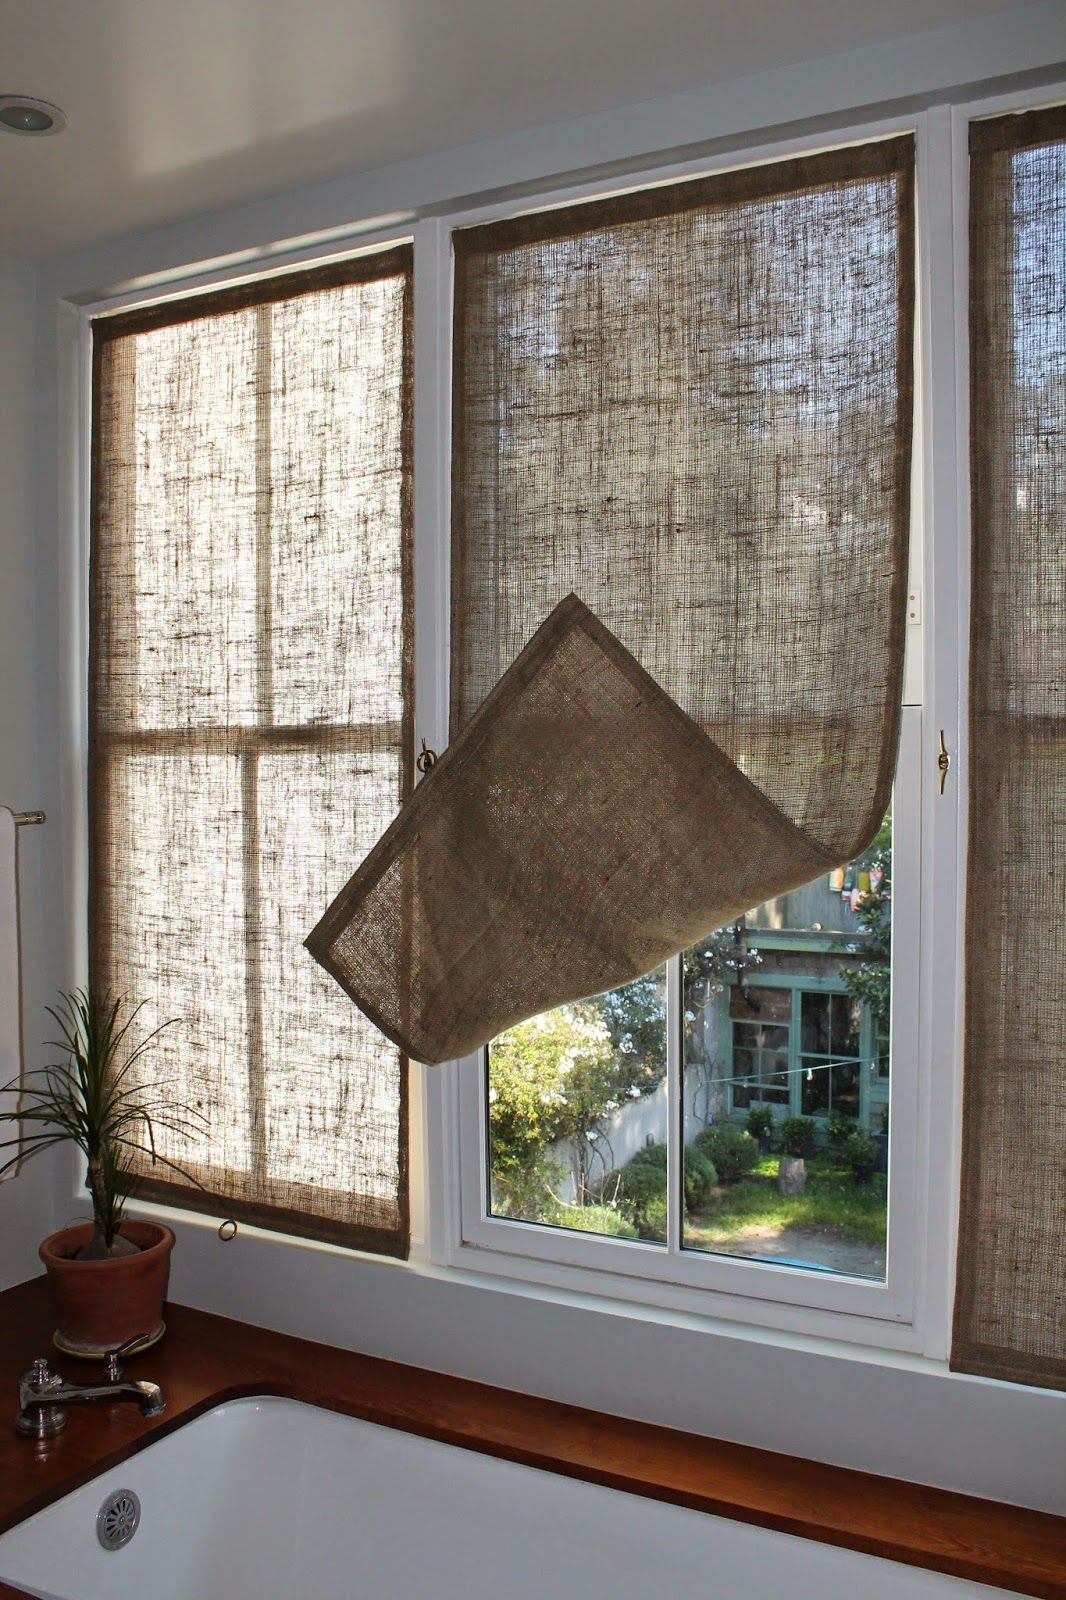 Burlap Window Shades Kitchen Window Coverings Window Coverings